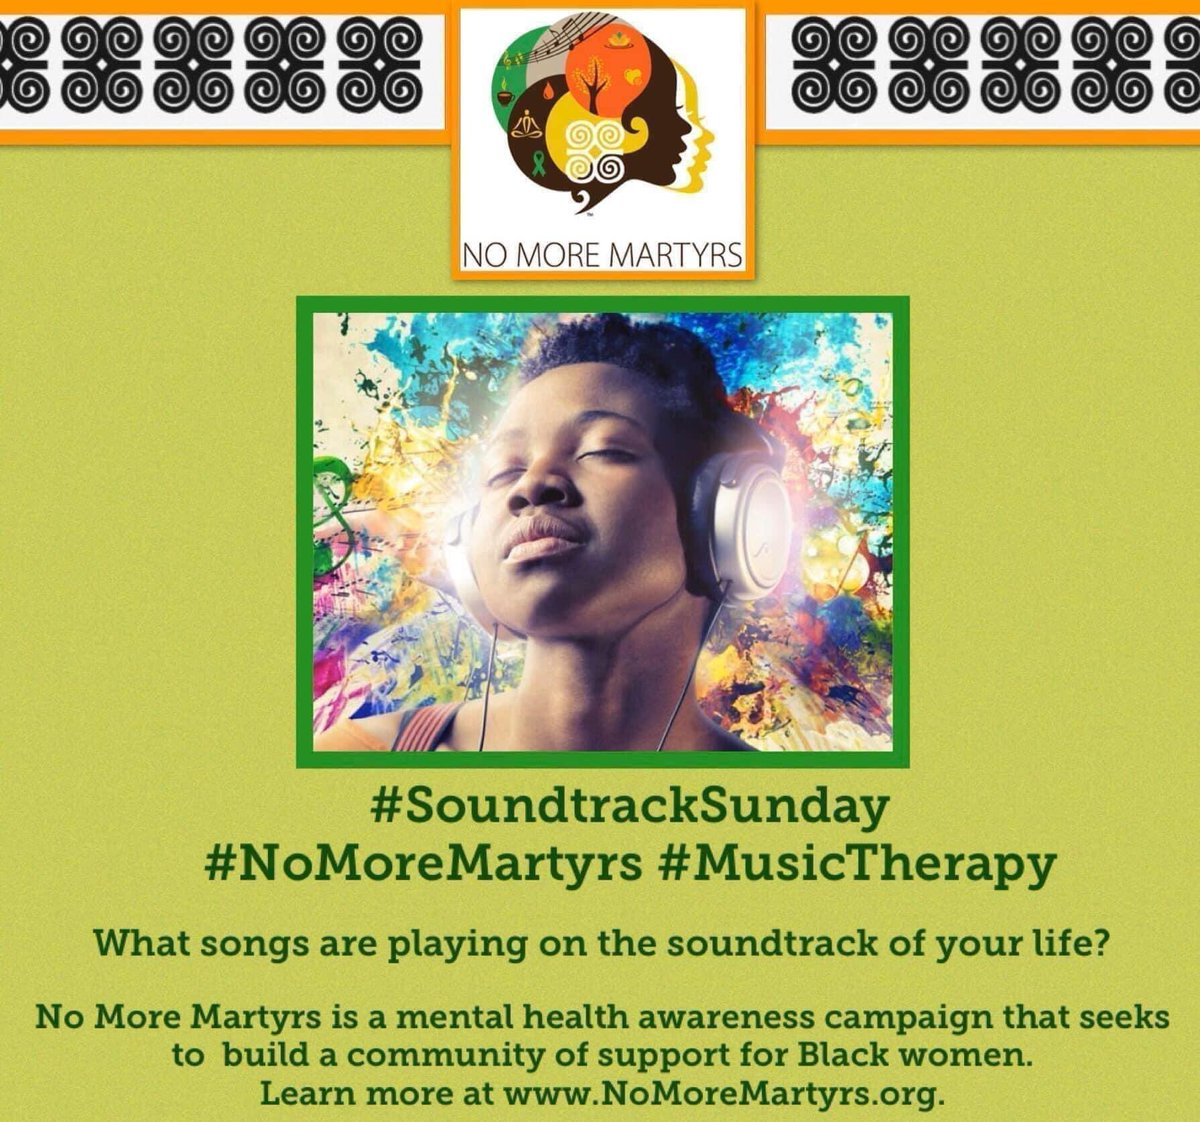 Happy #SoundtrackSunday No More Martyrs family!  What songs are playing on the soundtrack of your life today?  #NoMoreMartyrs #BlackMentalHealth #BlackWomen #BlackGirls #MentalHealth #SoundtrackSunday #MusicTherapy https://t.co/RXmp0NQPiz